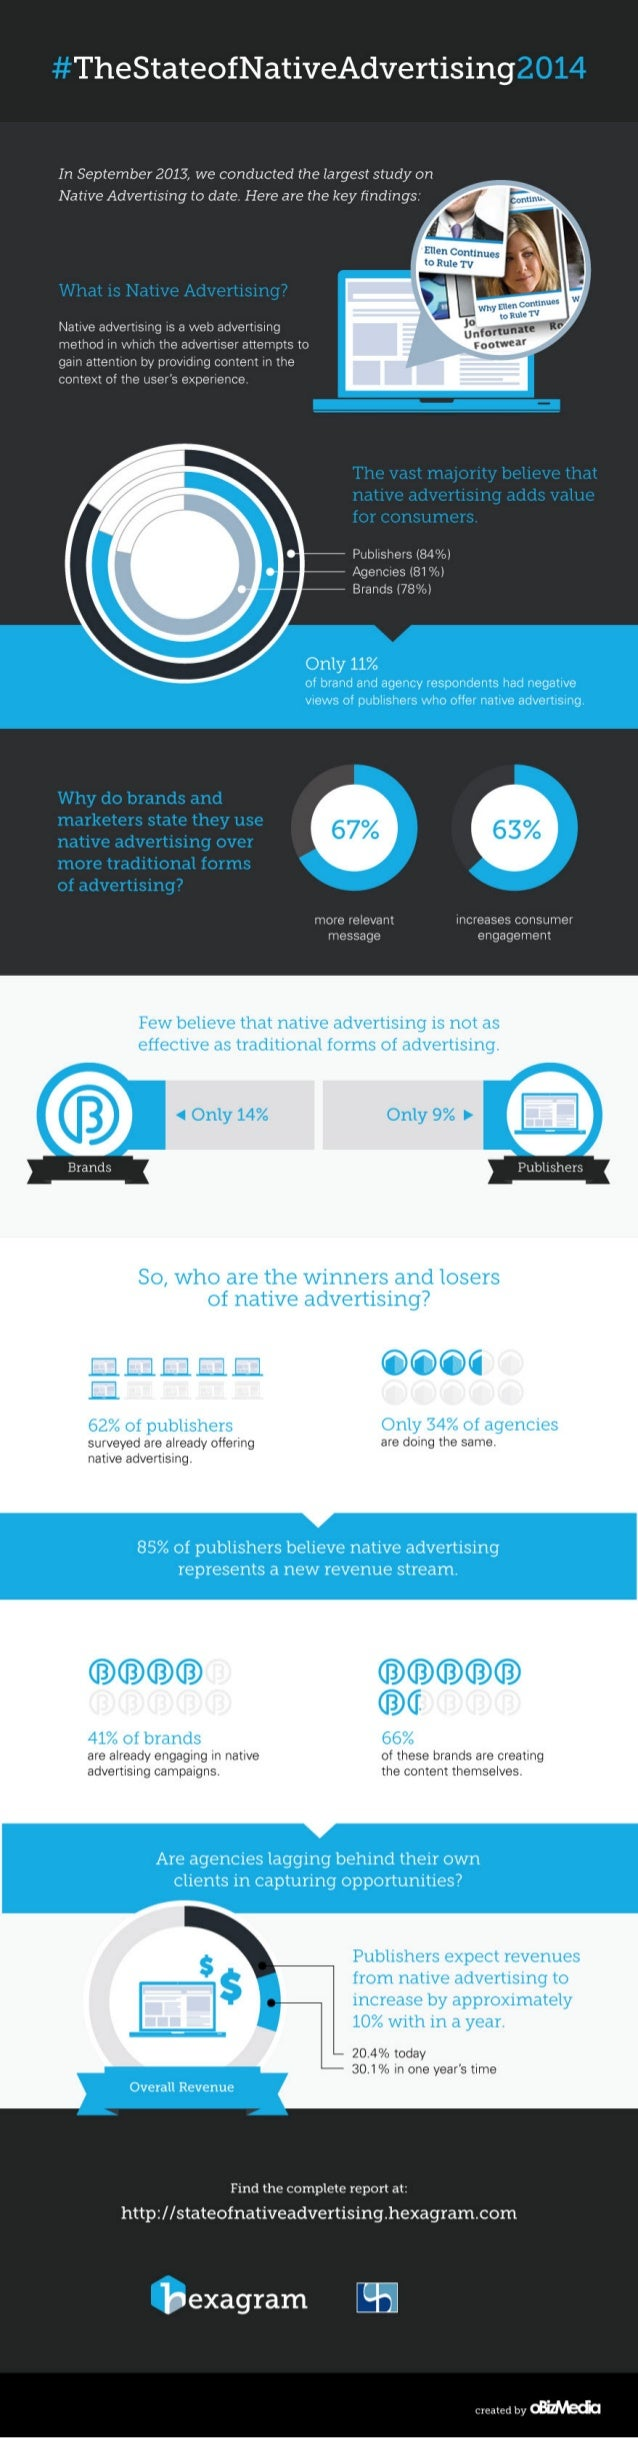 State of Native Advertising 2014